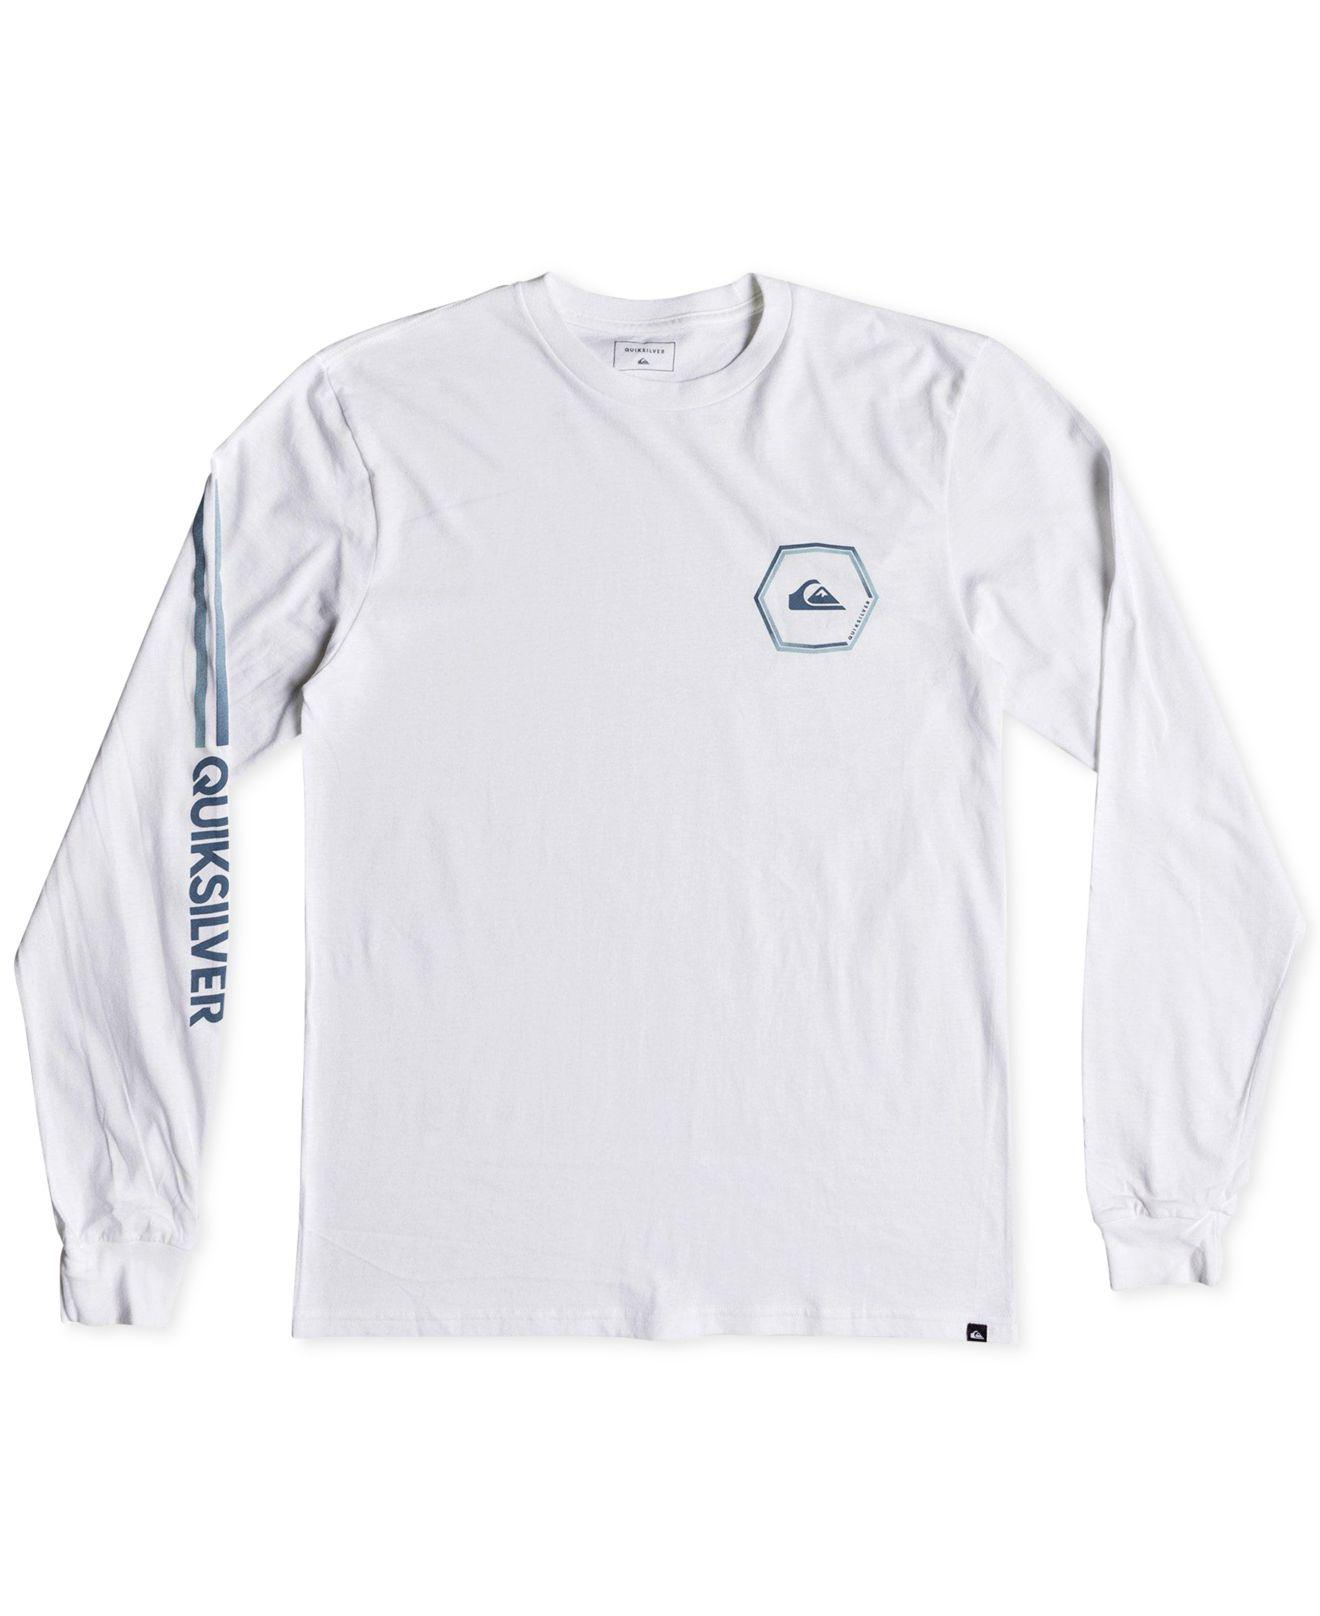 48431426d26a Lyst - Quiksilver Swell Symmetry Logo Graphic T-shirt in White for Men